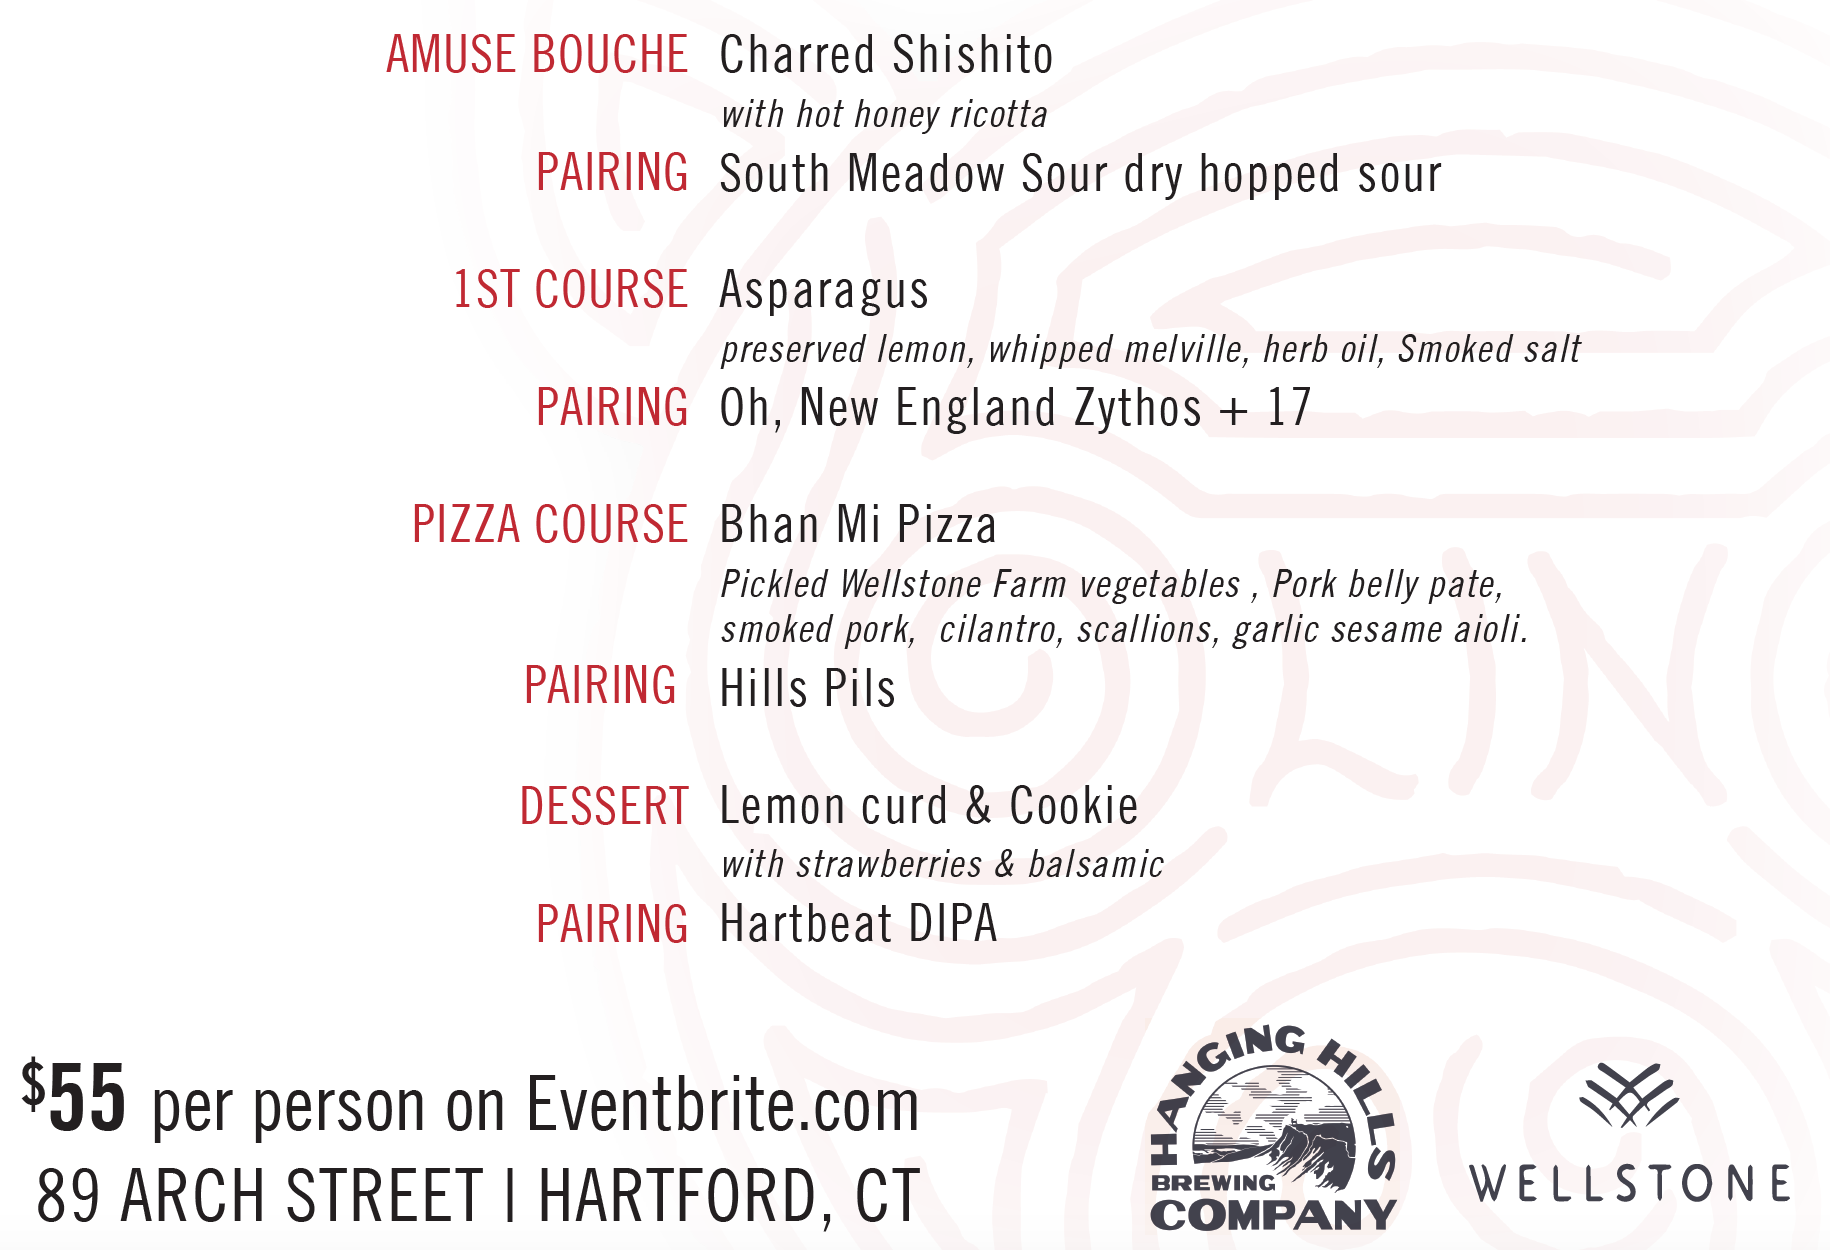 Blind Pig & Hanging Hills Farm Dinner Menu Benefiting Wellstone Farm